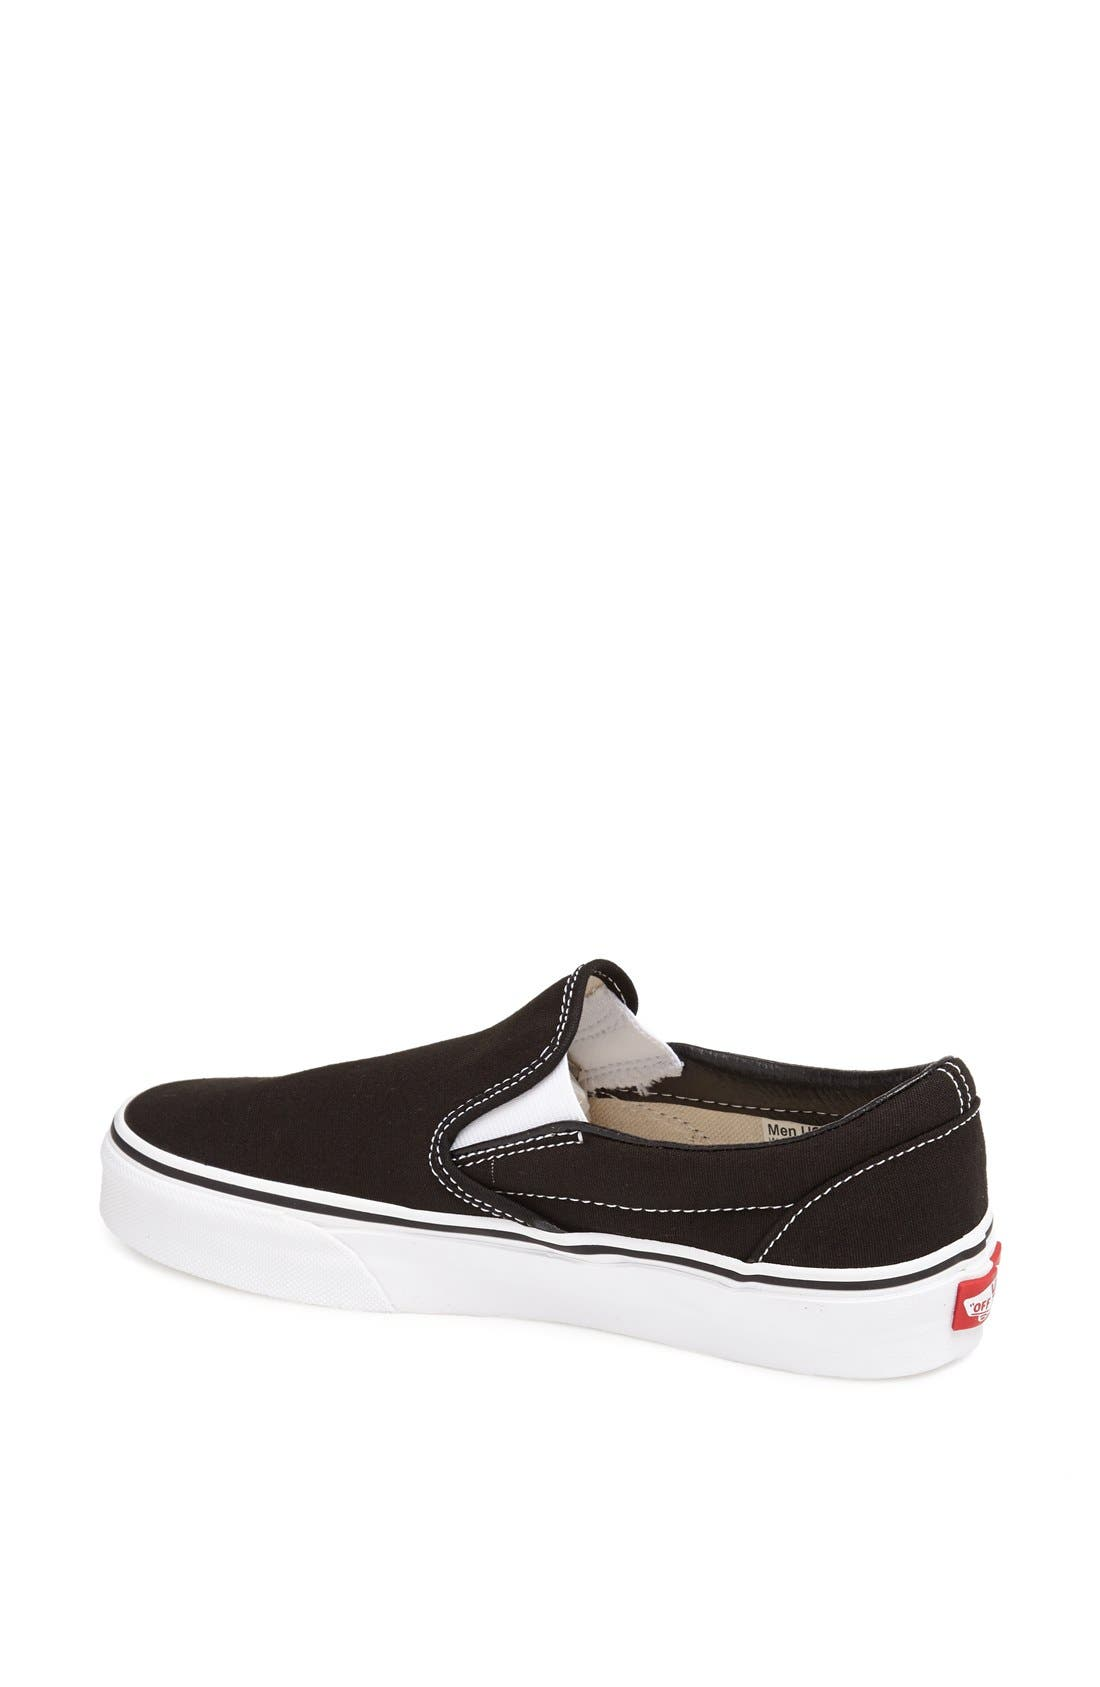 Classic Slip-On Sneaker,                             Alternate thumbnail 5, color,                             BLACK